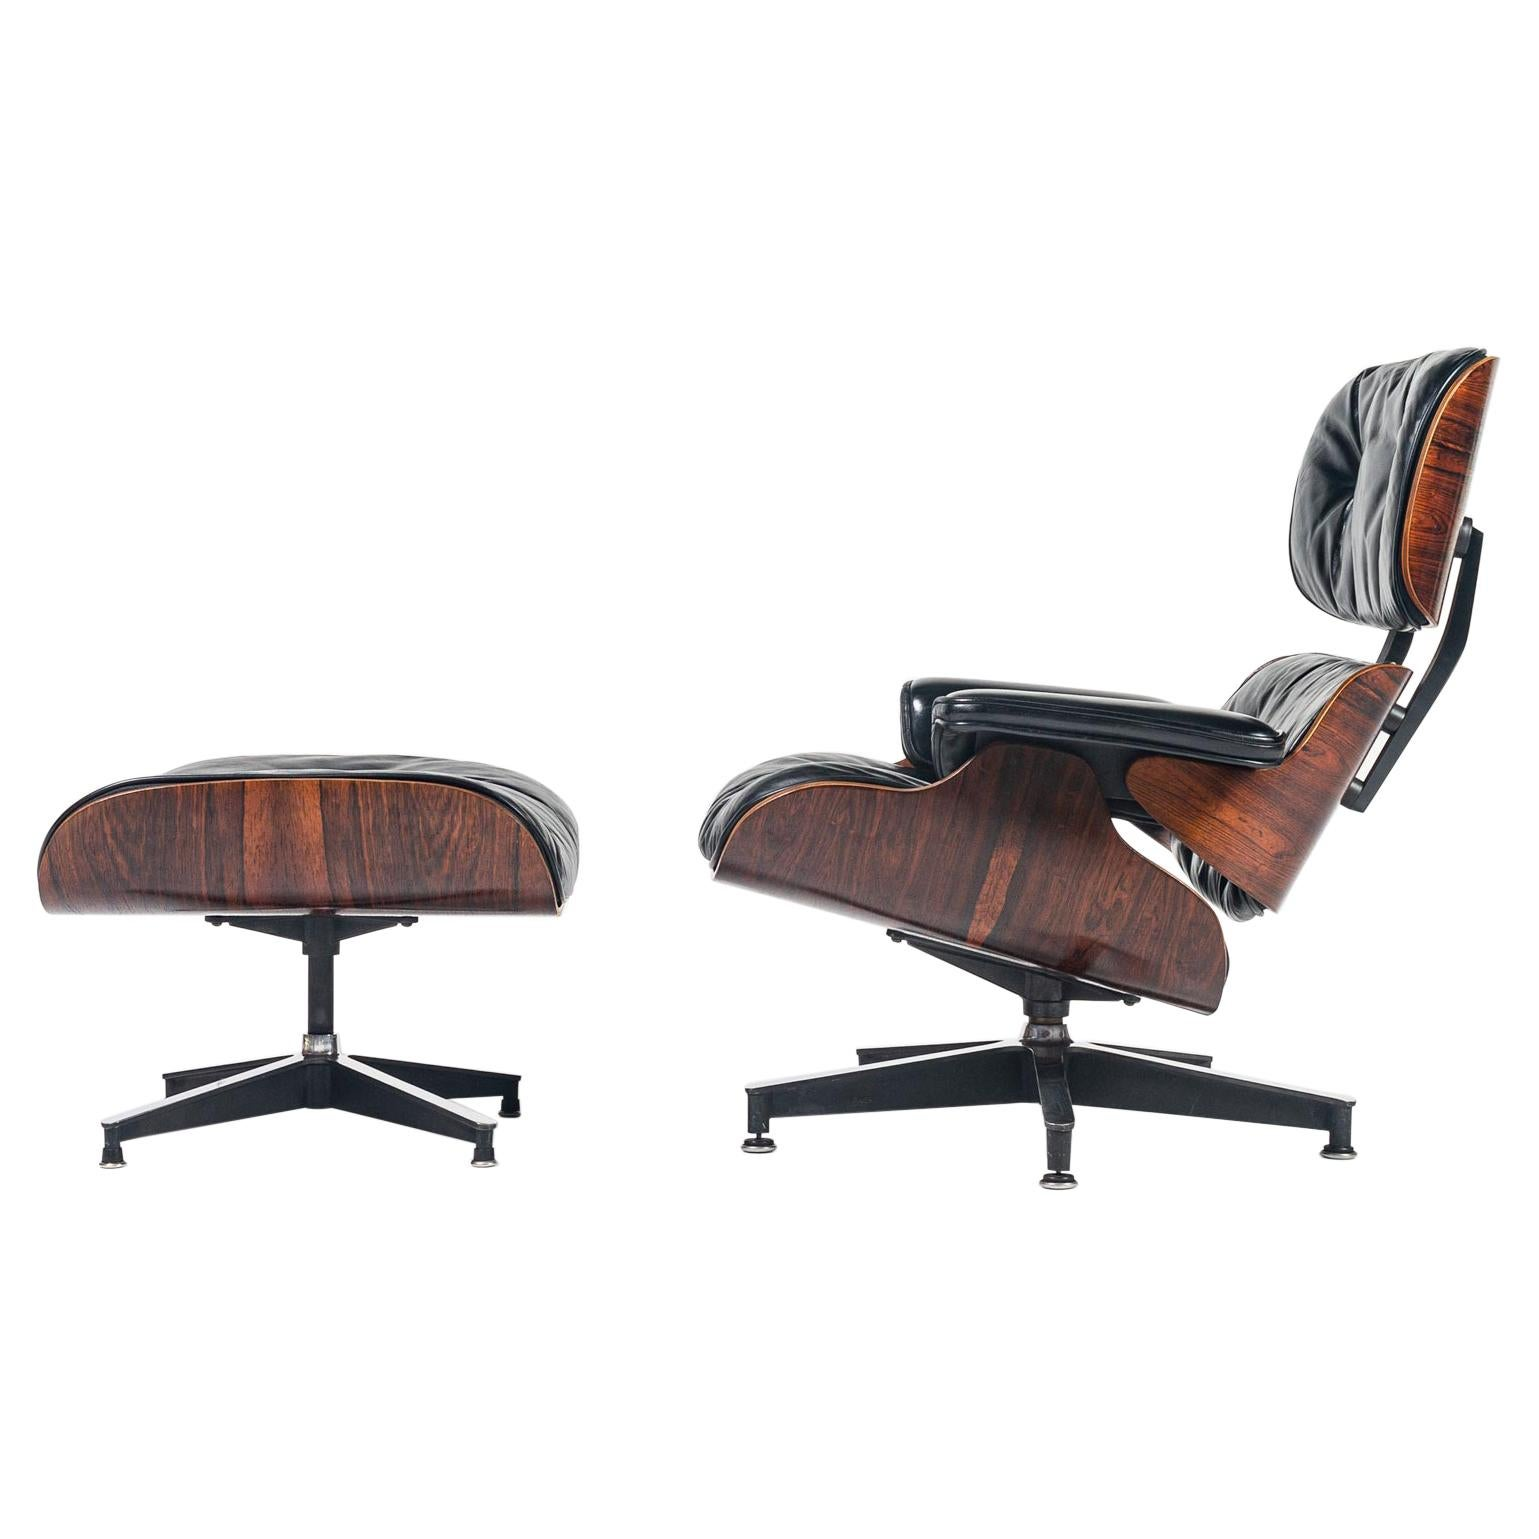 Fully Restored 1st Gen 1956 Eames Lounge Chair and Boot Glide Ottoman